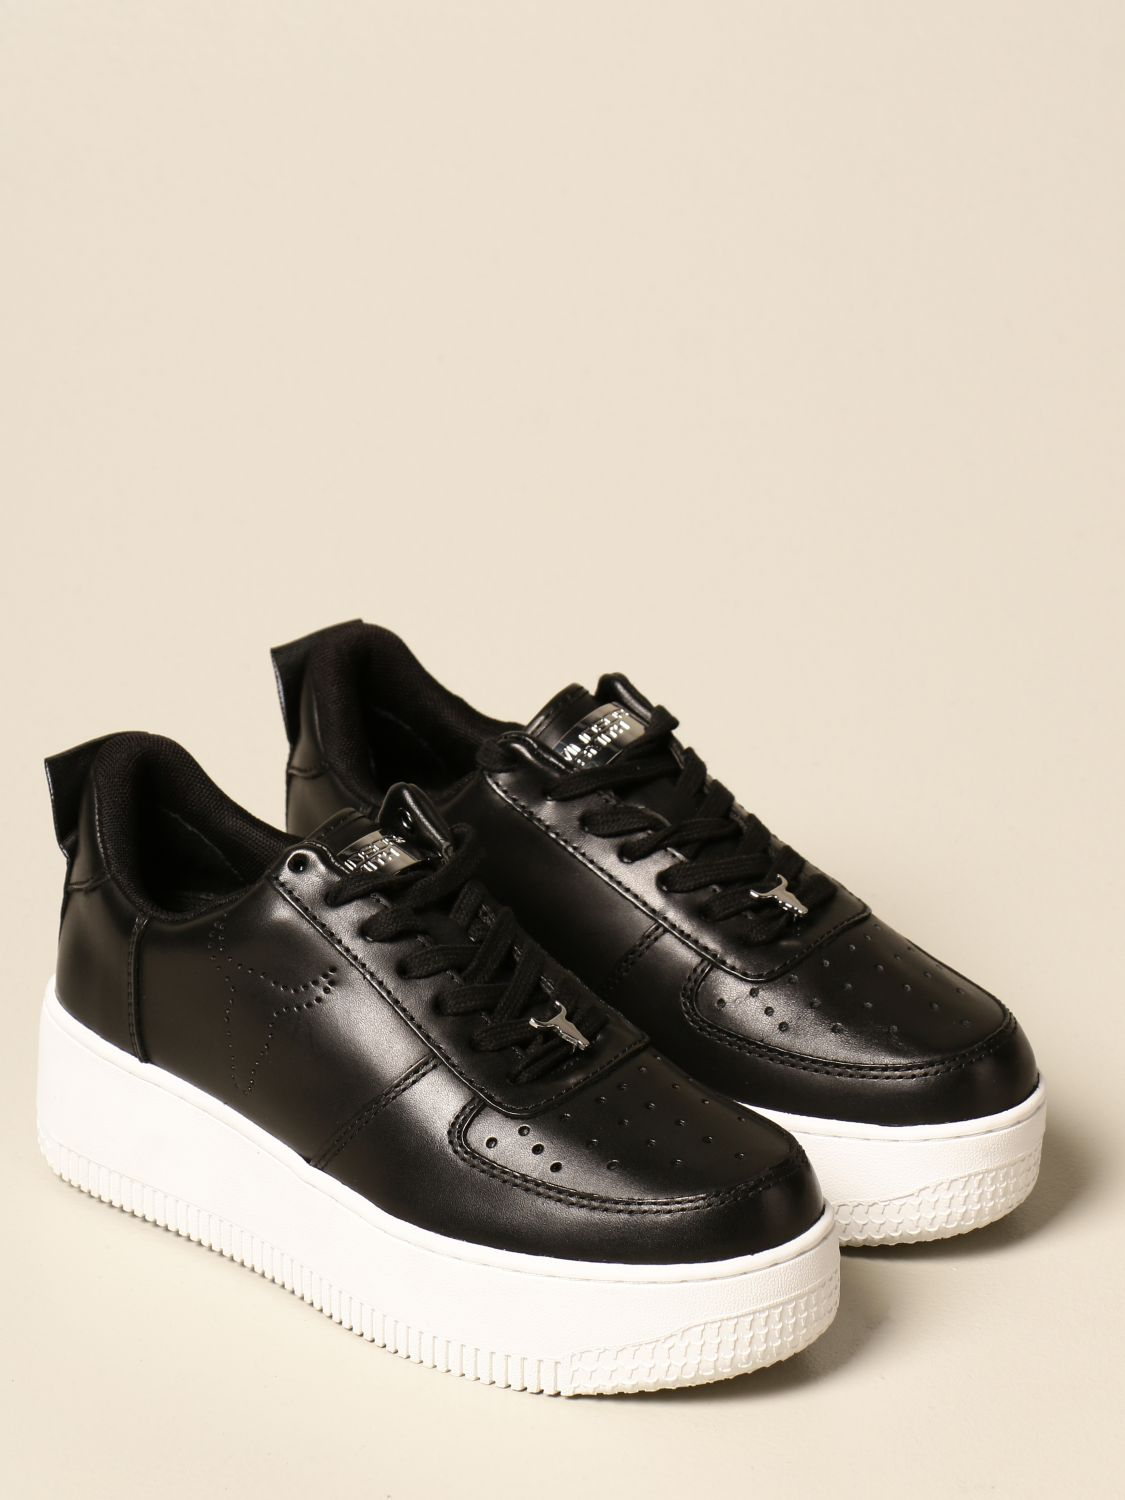 Sneakers Windsorsmith Asap: Windsorsmith sneakers in leather black 1 2